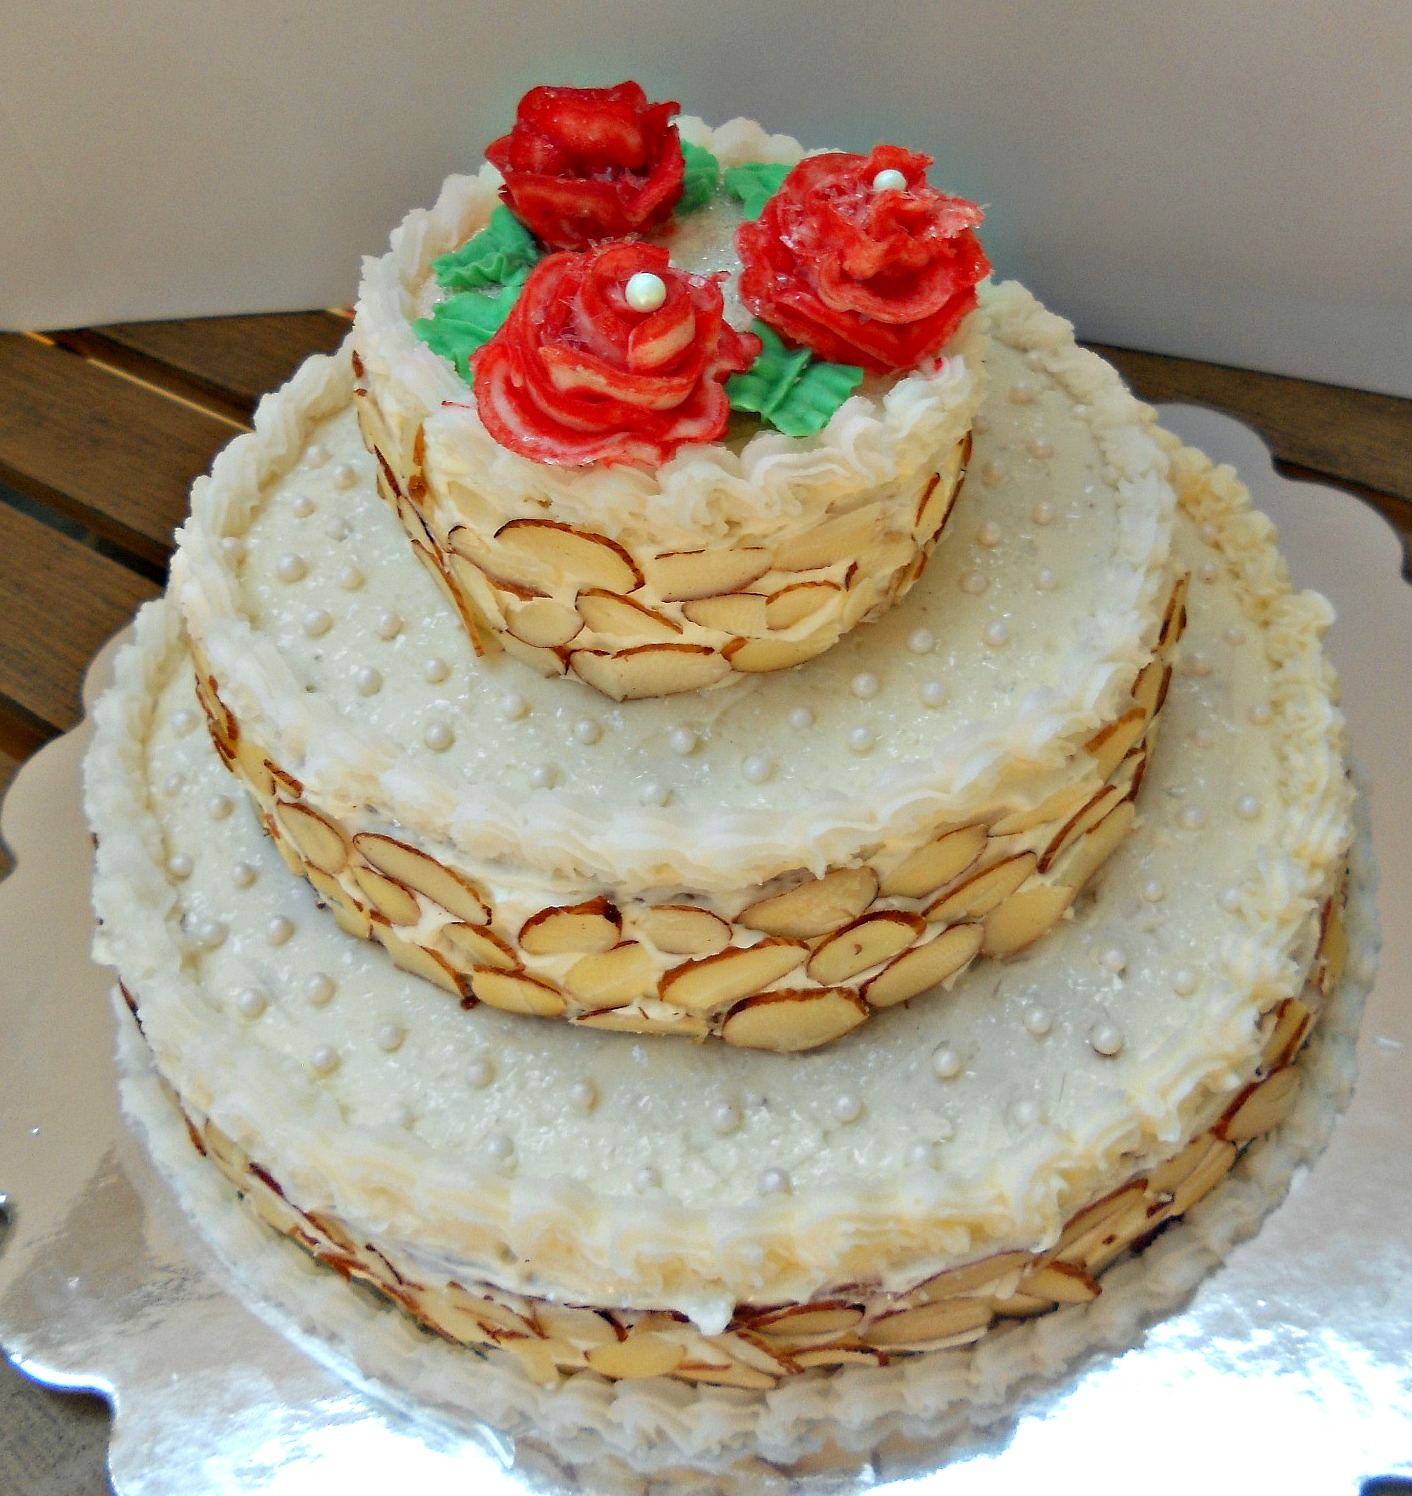 Three Tiered Wedding Cake - Hezzi-D s Books and Cooks